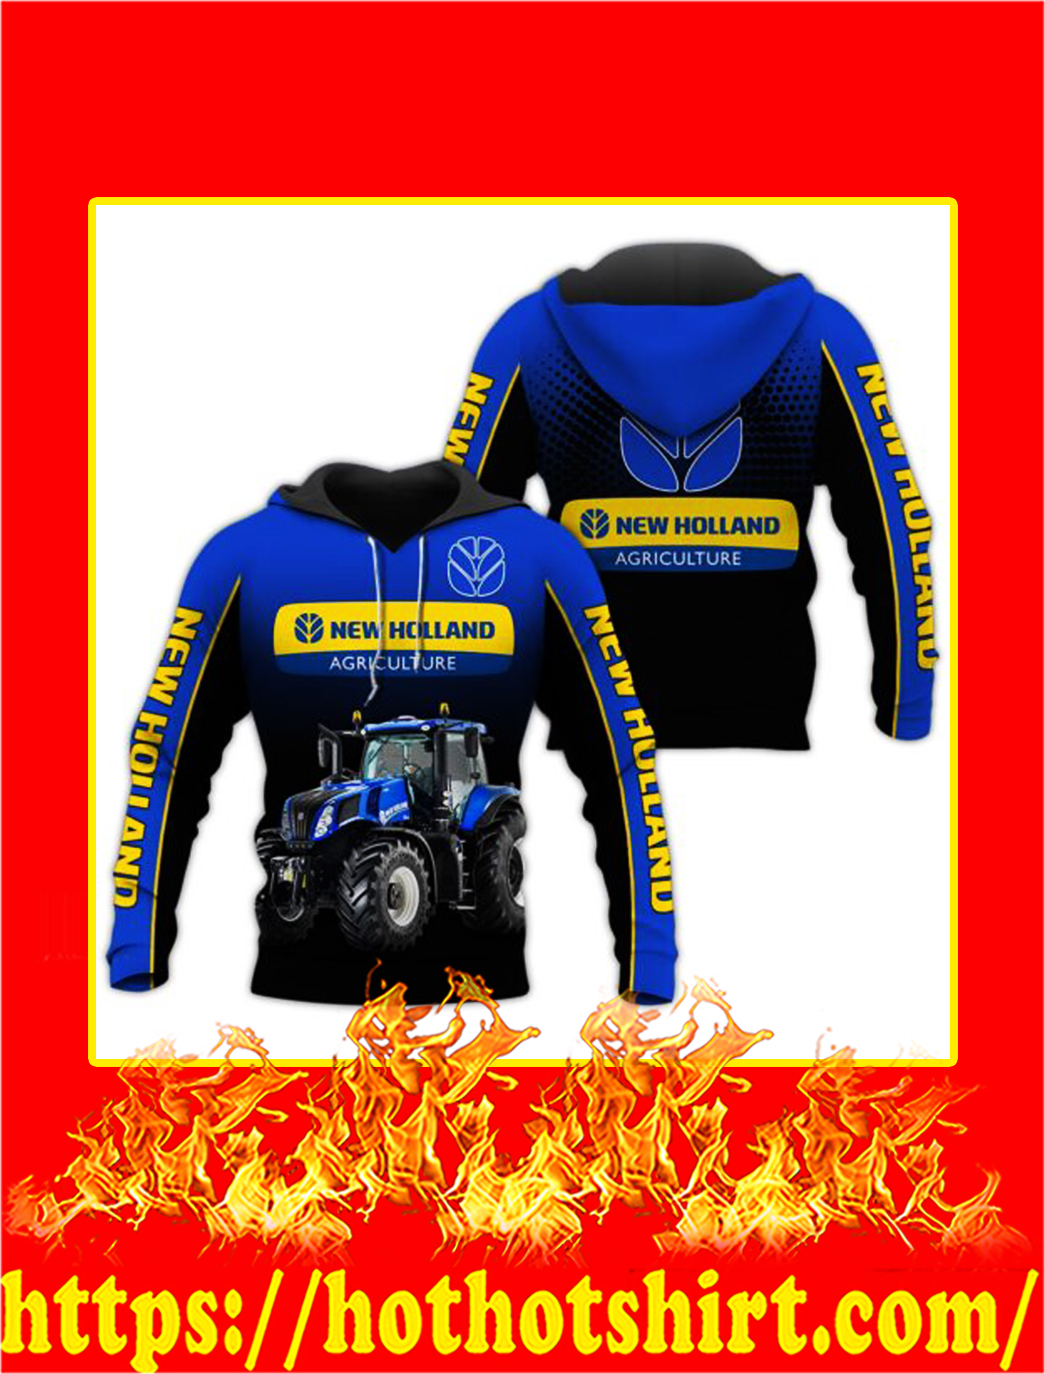 Tractor New Holland Agriculture 3D All Over Printed hoodie